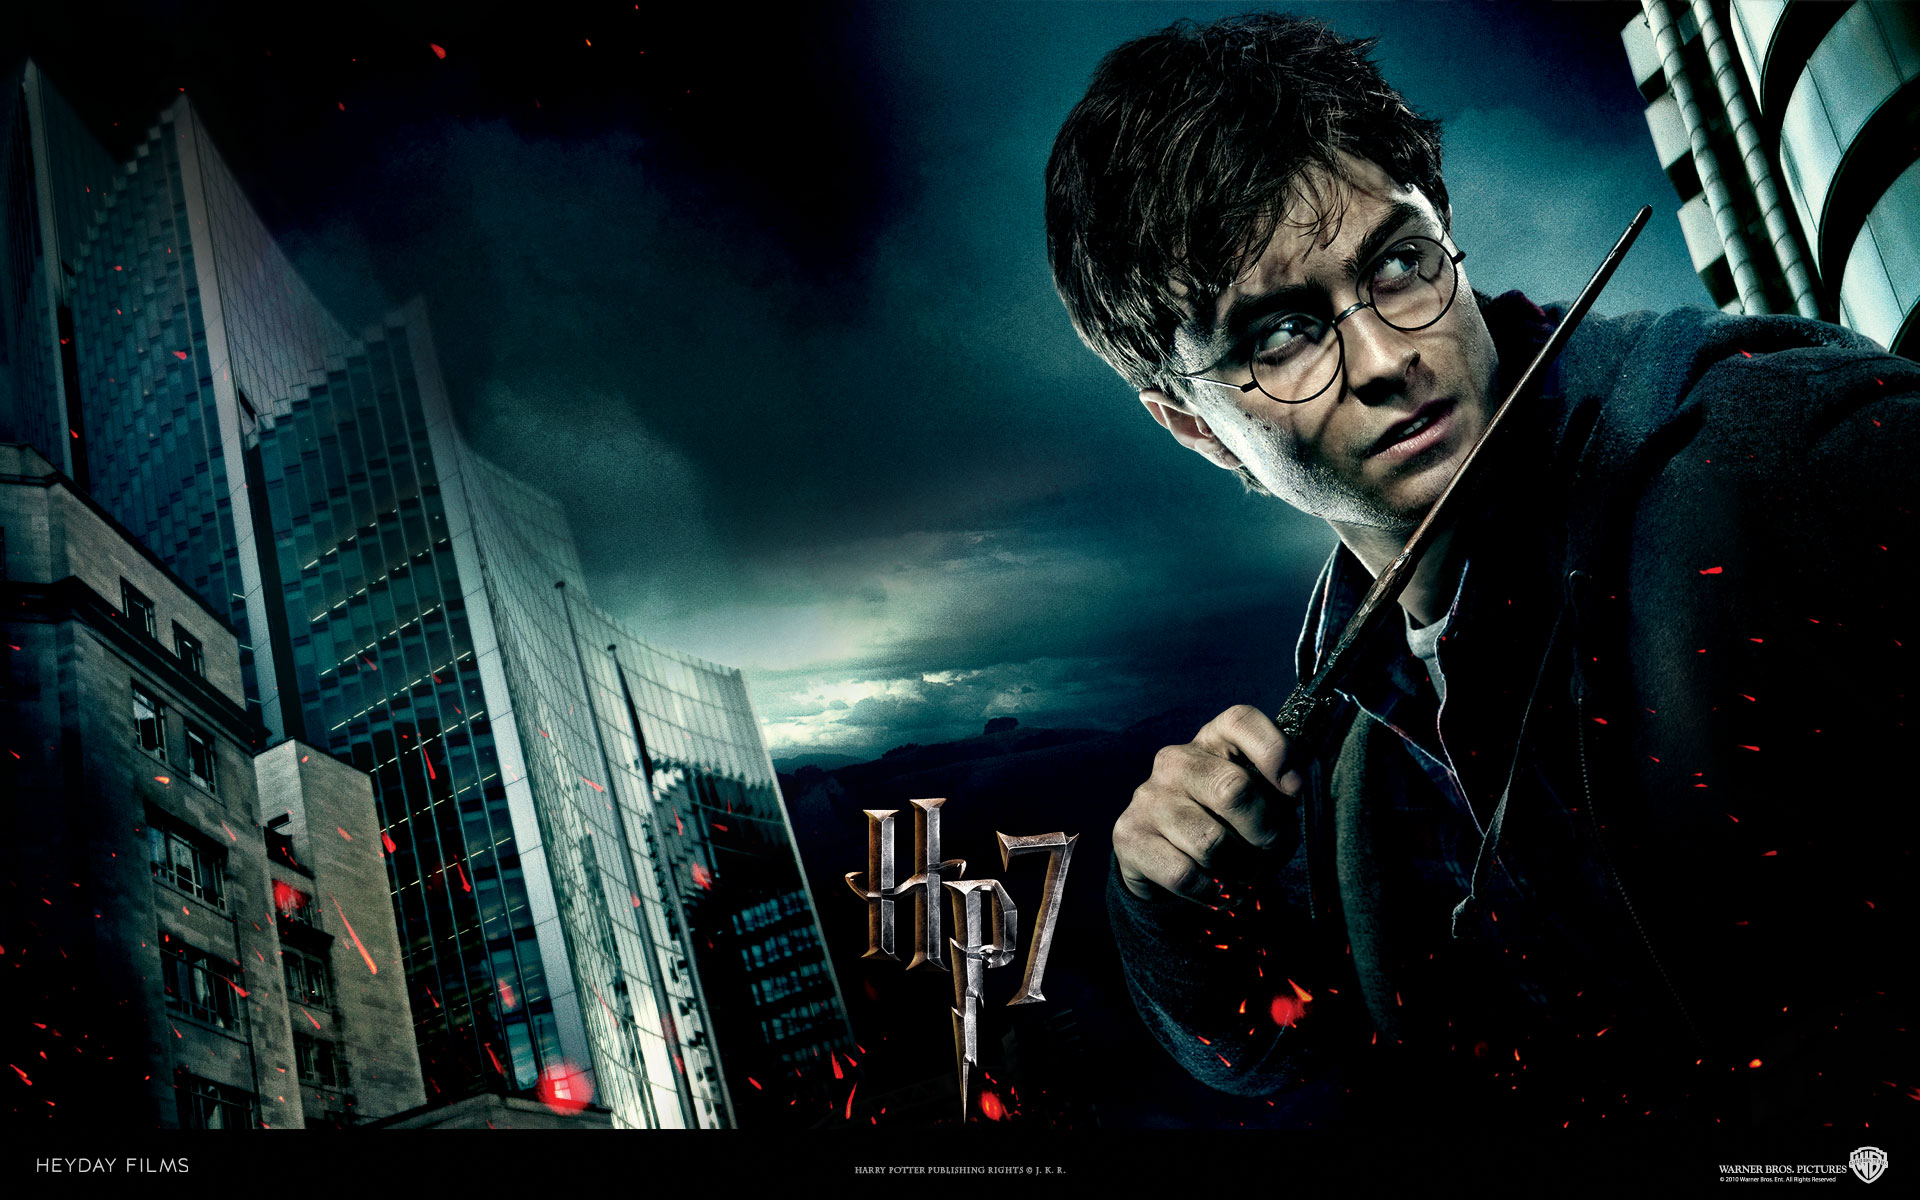 Harry Potter 7-1